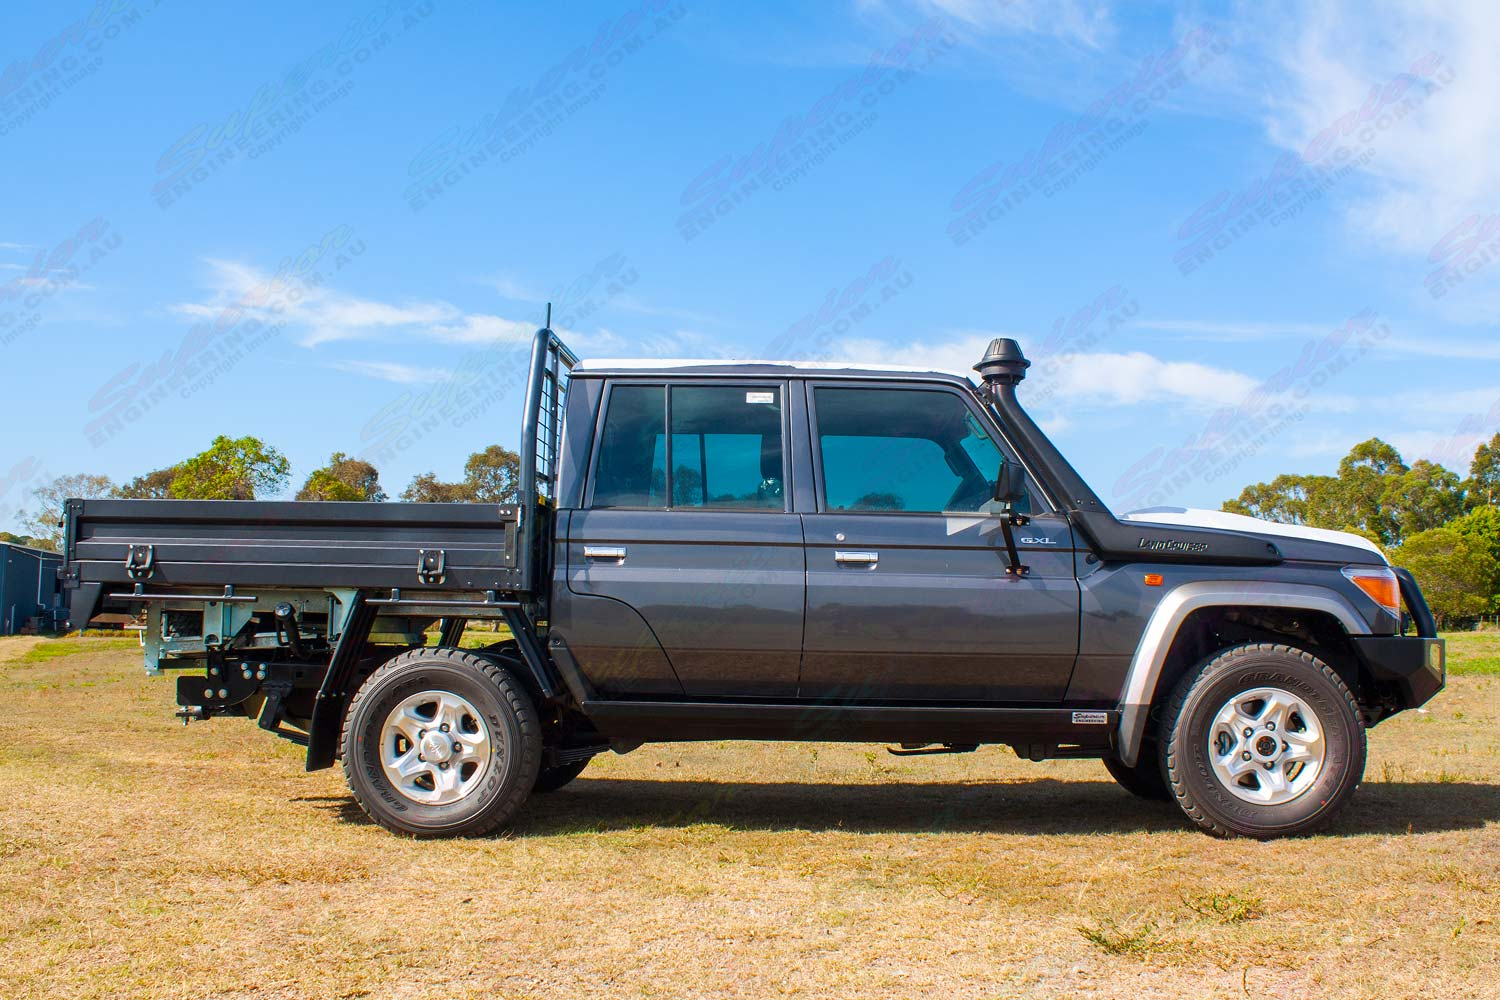 Right side view of a Brand NEW 79 Series Dual Cab Toyota Landcruiser fitted with a set of Superior Stealth Rock Sliders